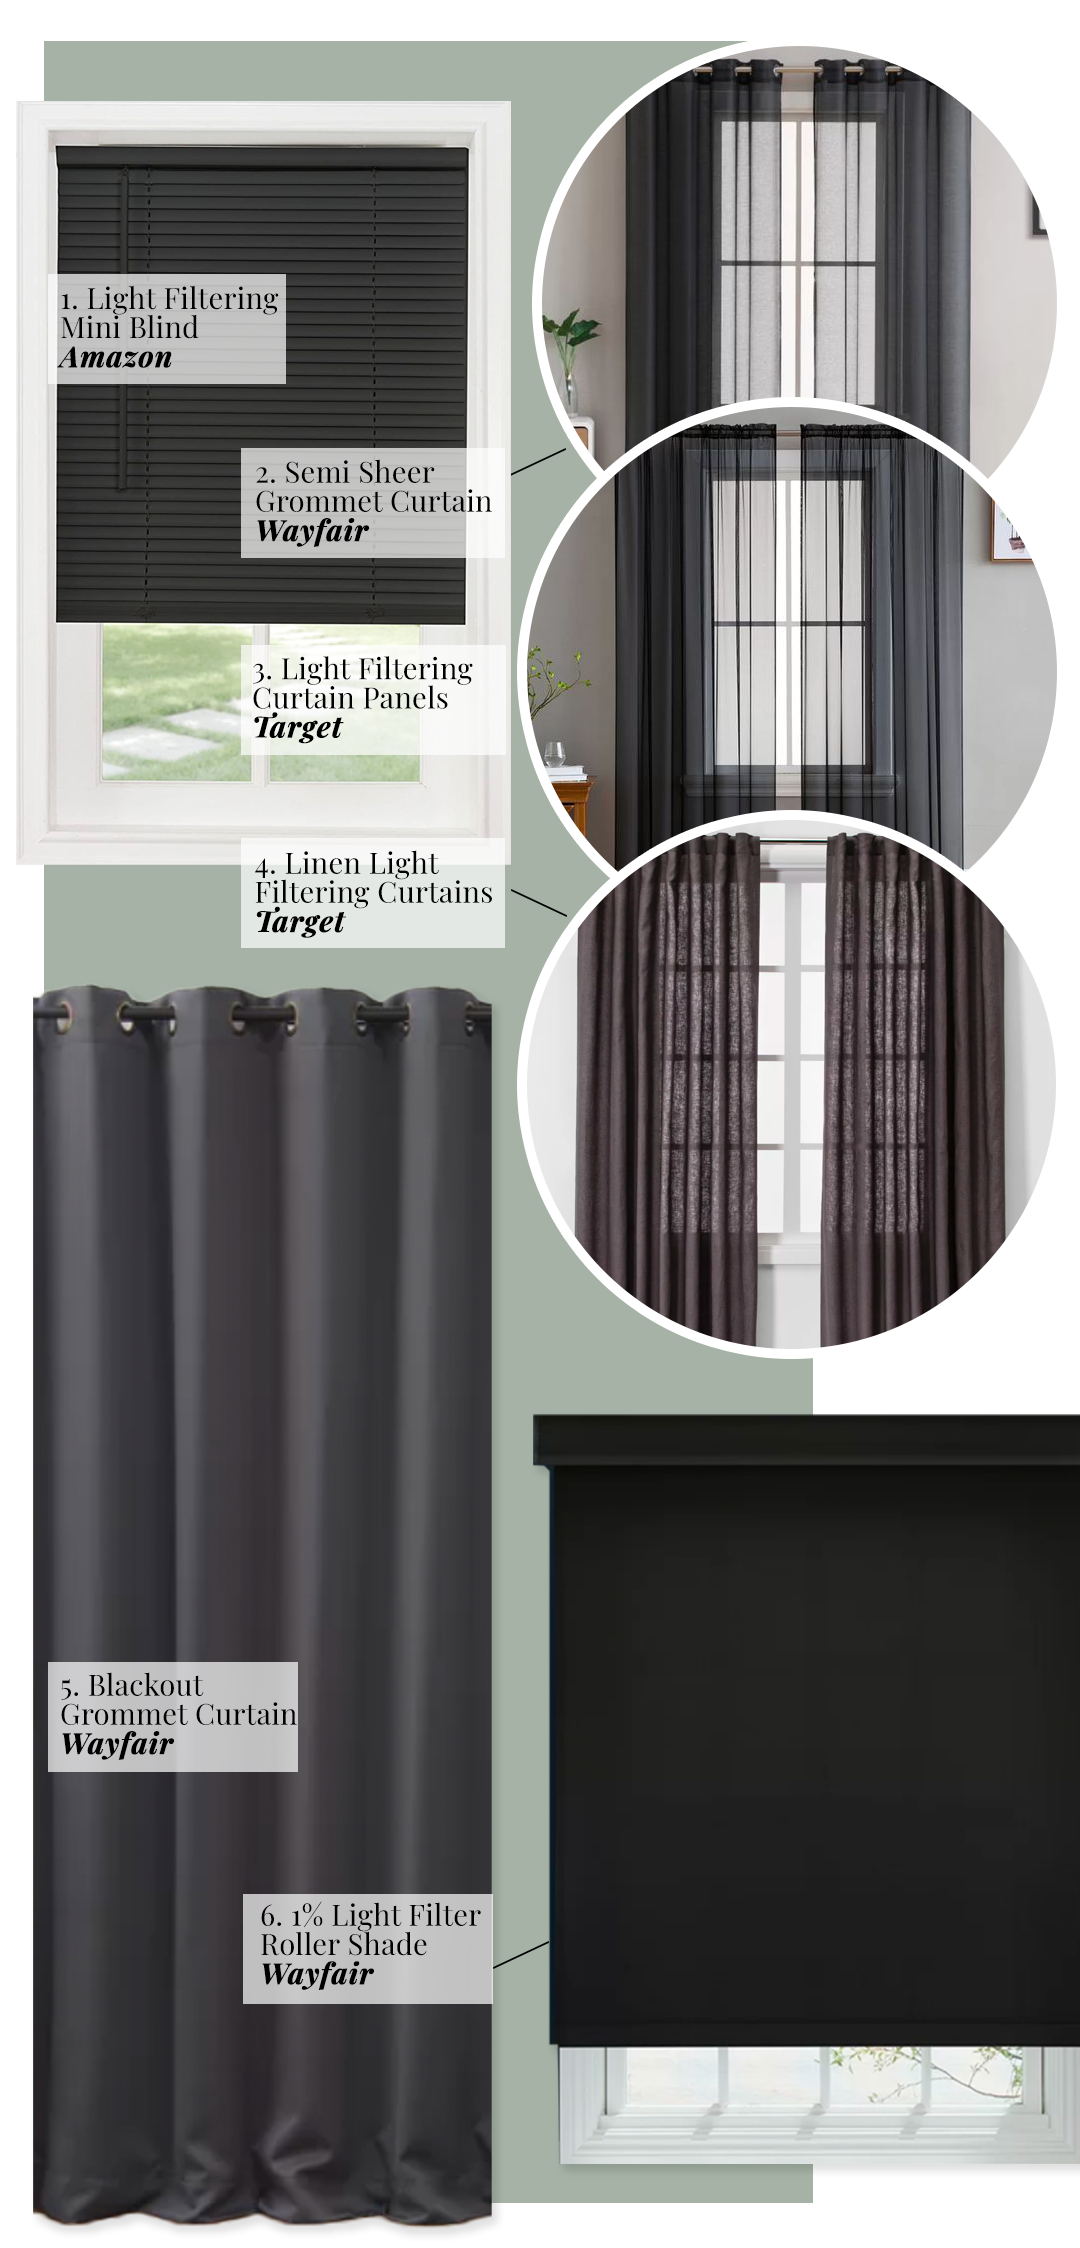 What Color Curtains Go With Sage Green Walls? Dark Gray, Charcoal and Black.